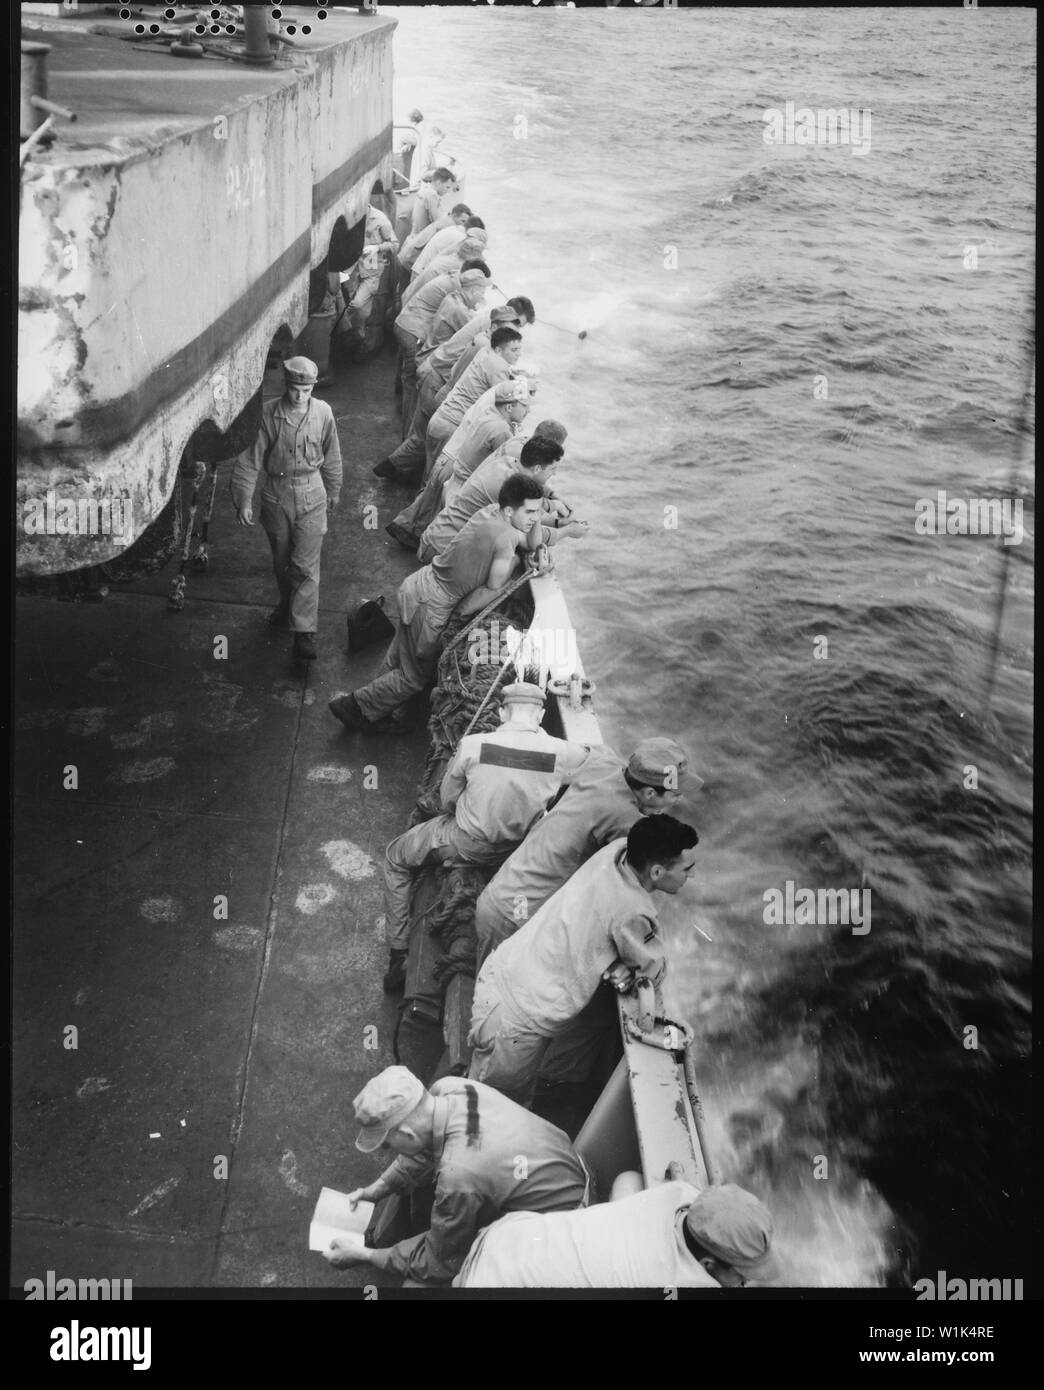 Uss A Black and White Stock Photos & Images - Page 3 - Alamy